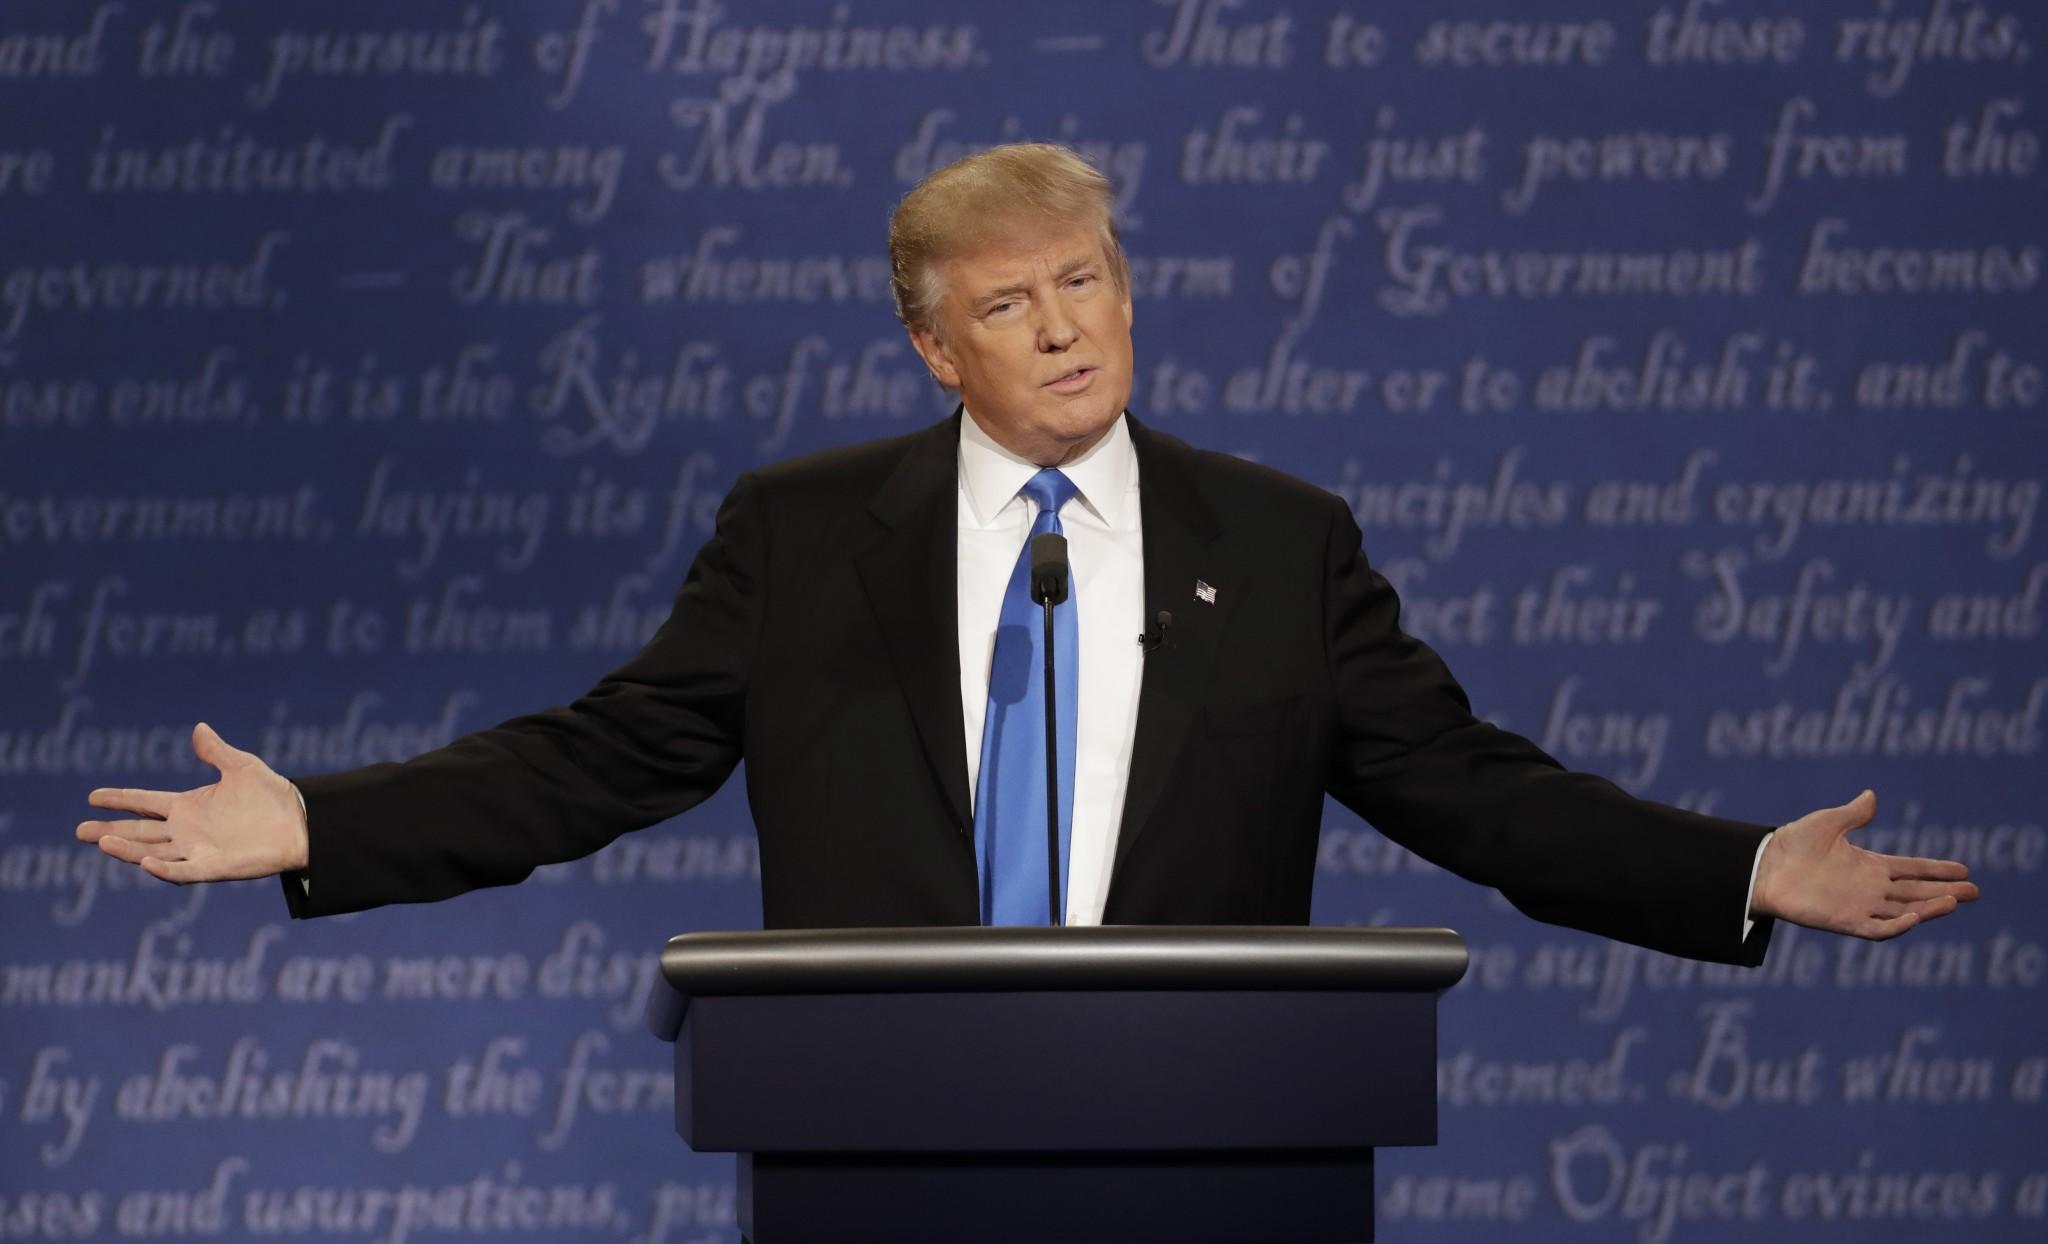 Republican nominee Donald Trump during the presidential debate on Sept. 26, 2016